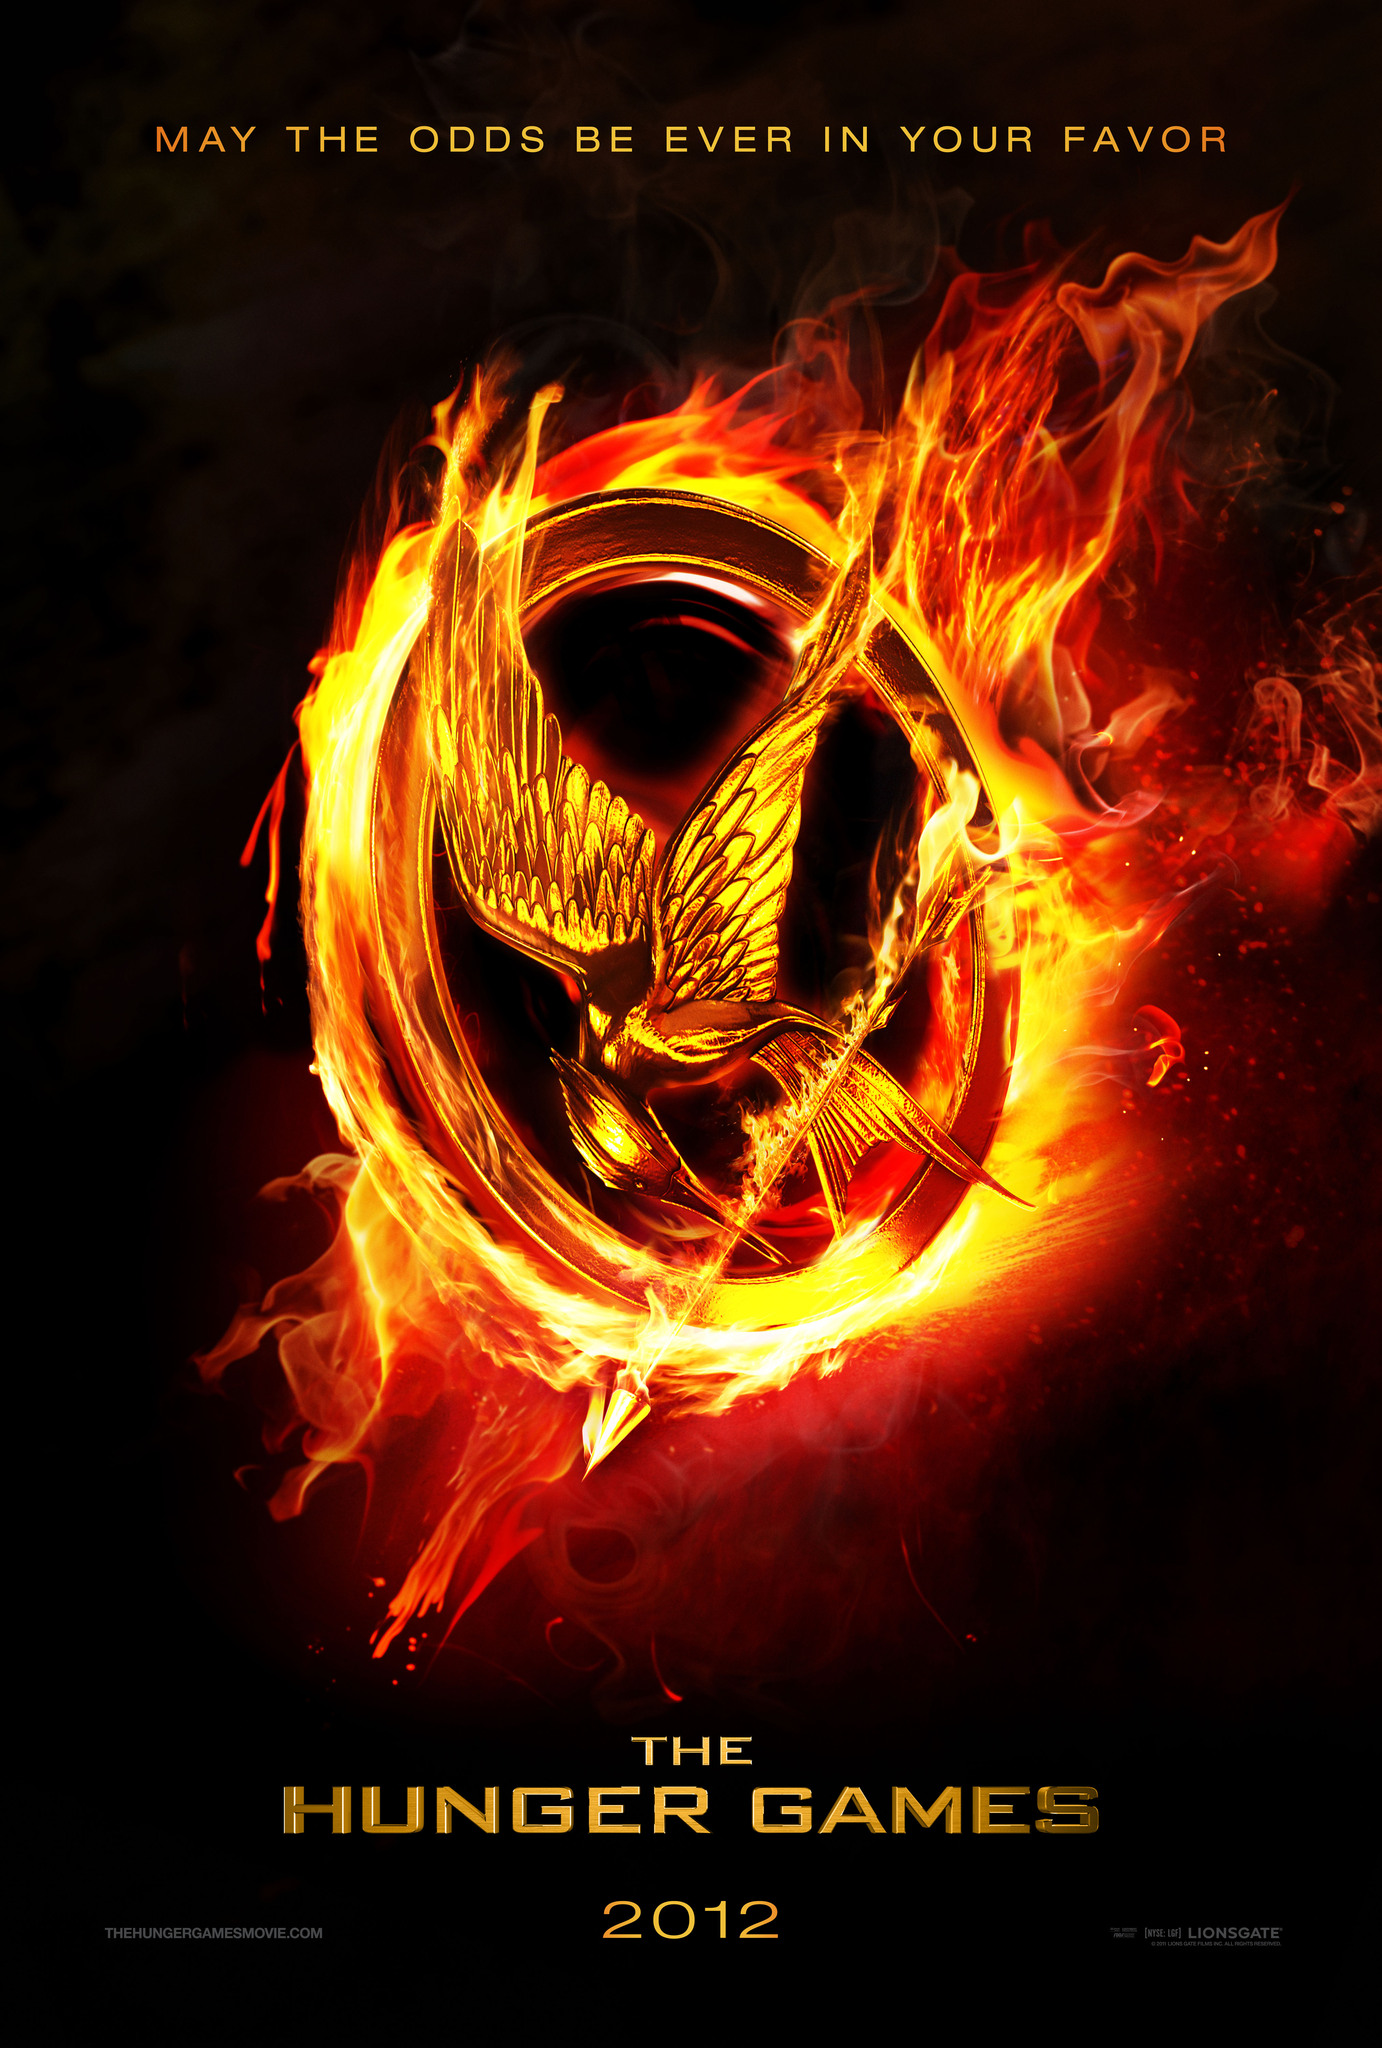 http://images2.wikia.nocookie.net/__cb20110721184016/thehungergames/images/5/58/The_Hunger_Games_poster-0001.jpeg